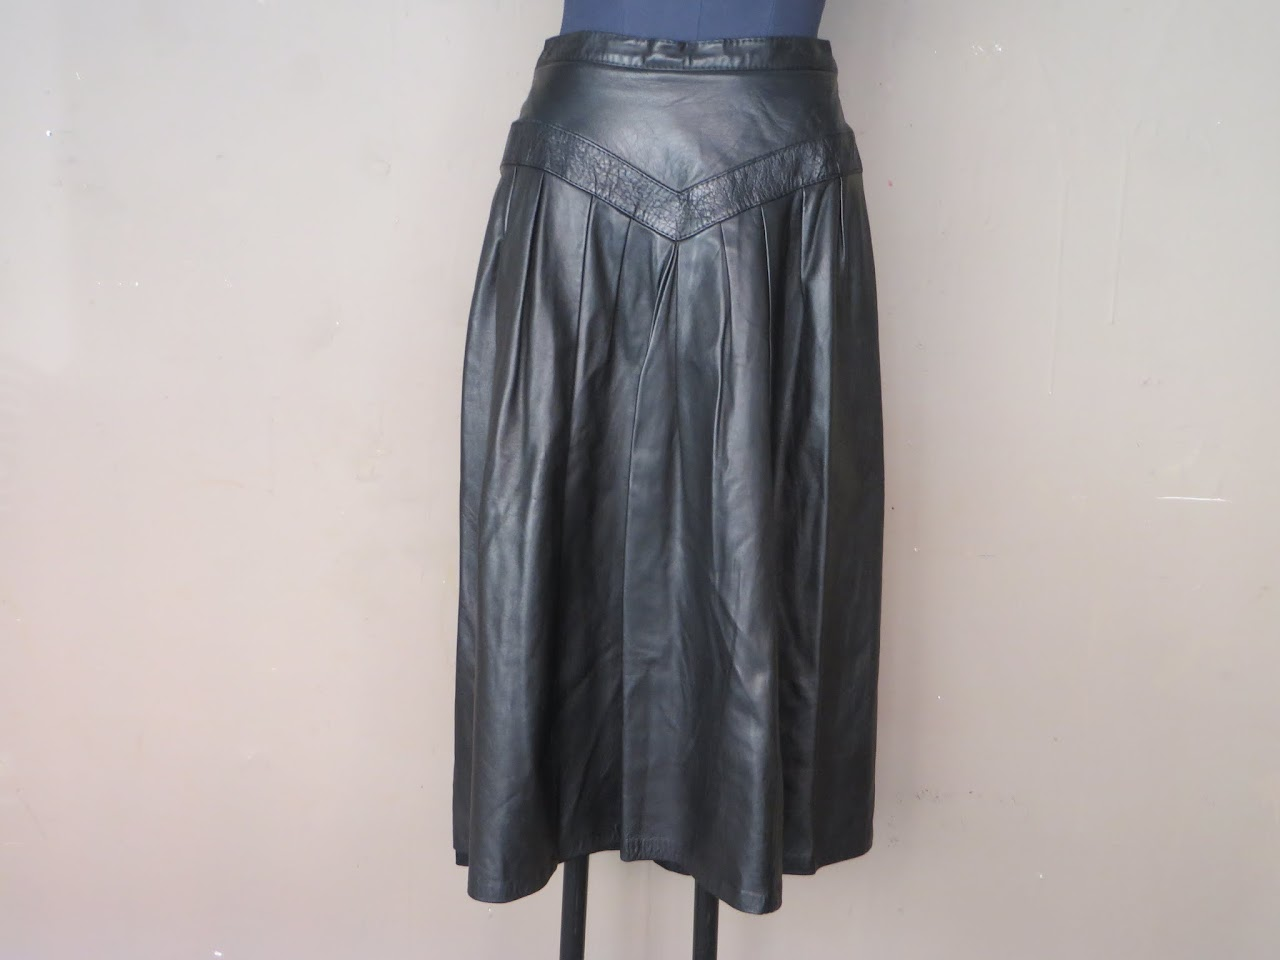 Rajac Vintage Leather Skirt